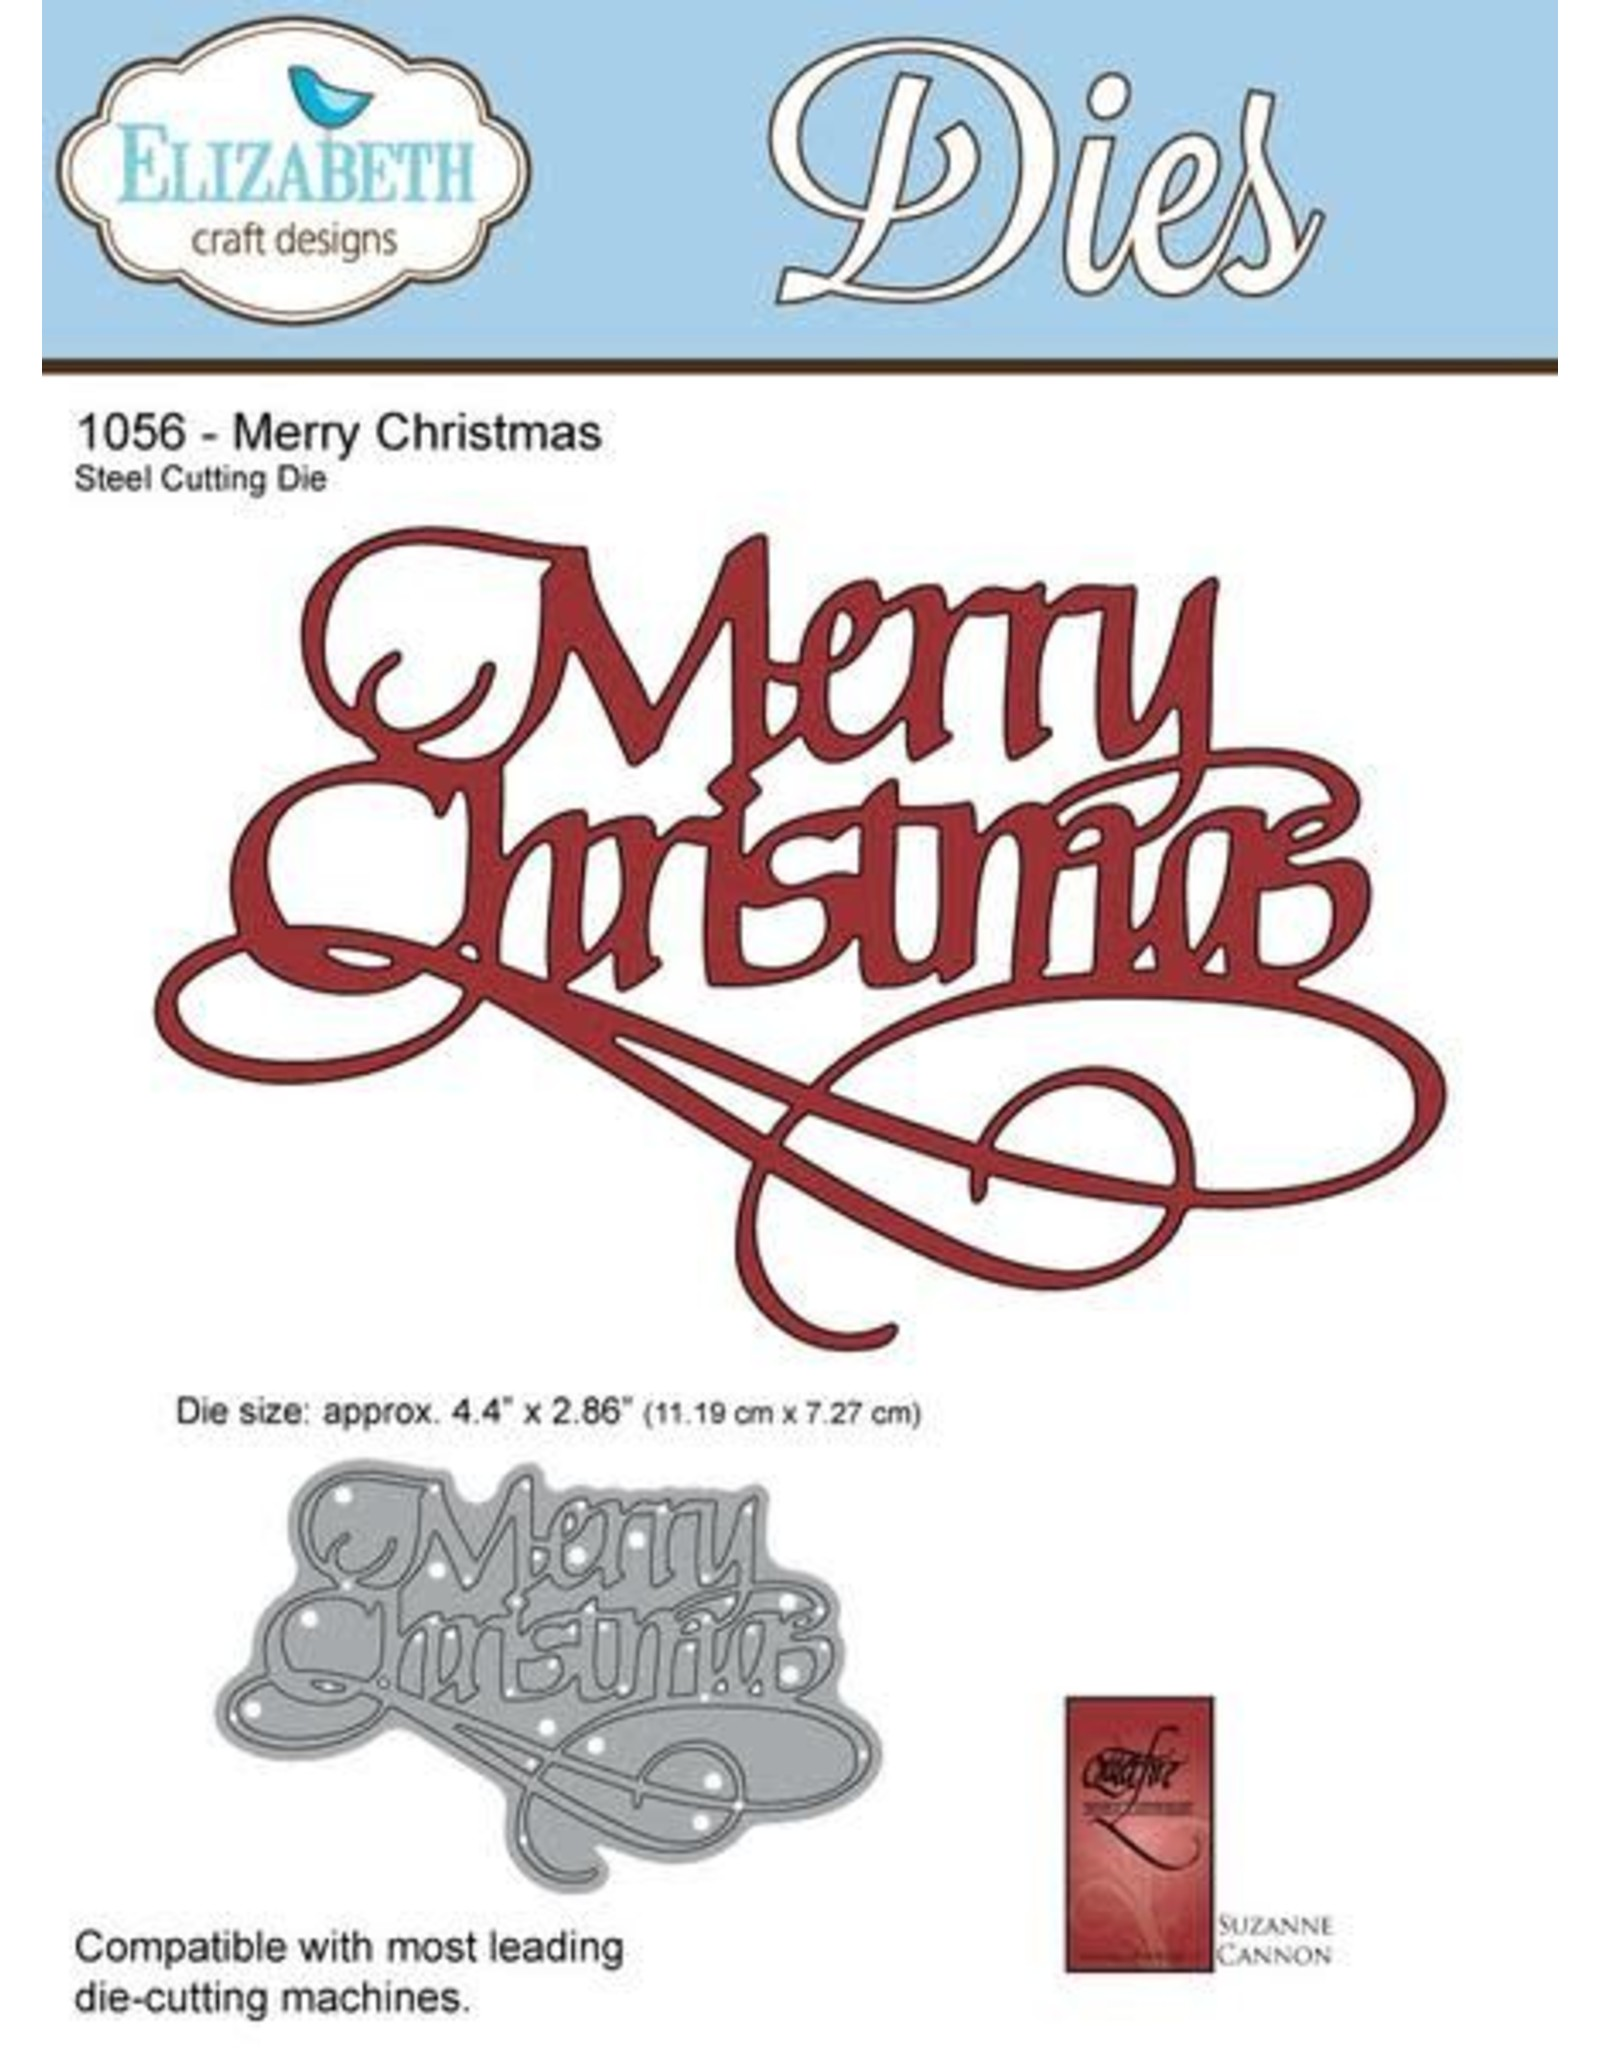 Elizabeth Craft Designs Elizabeth Craft Designs dies A Way With Words, Merry Christmas 1056